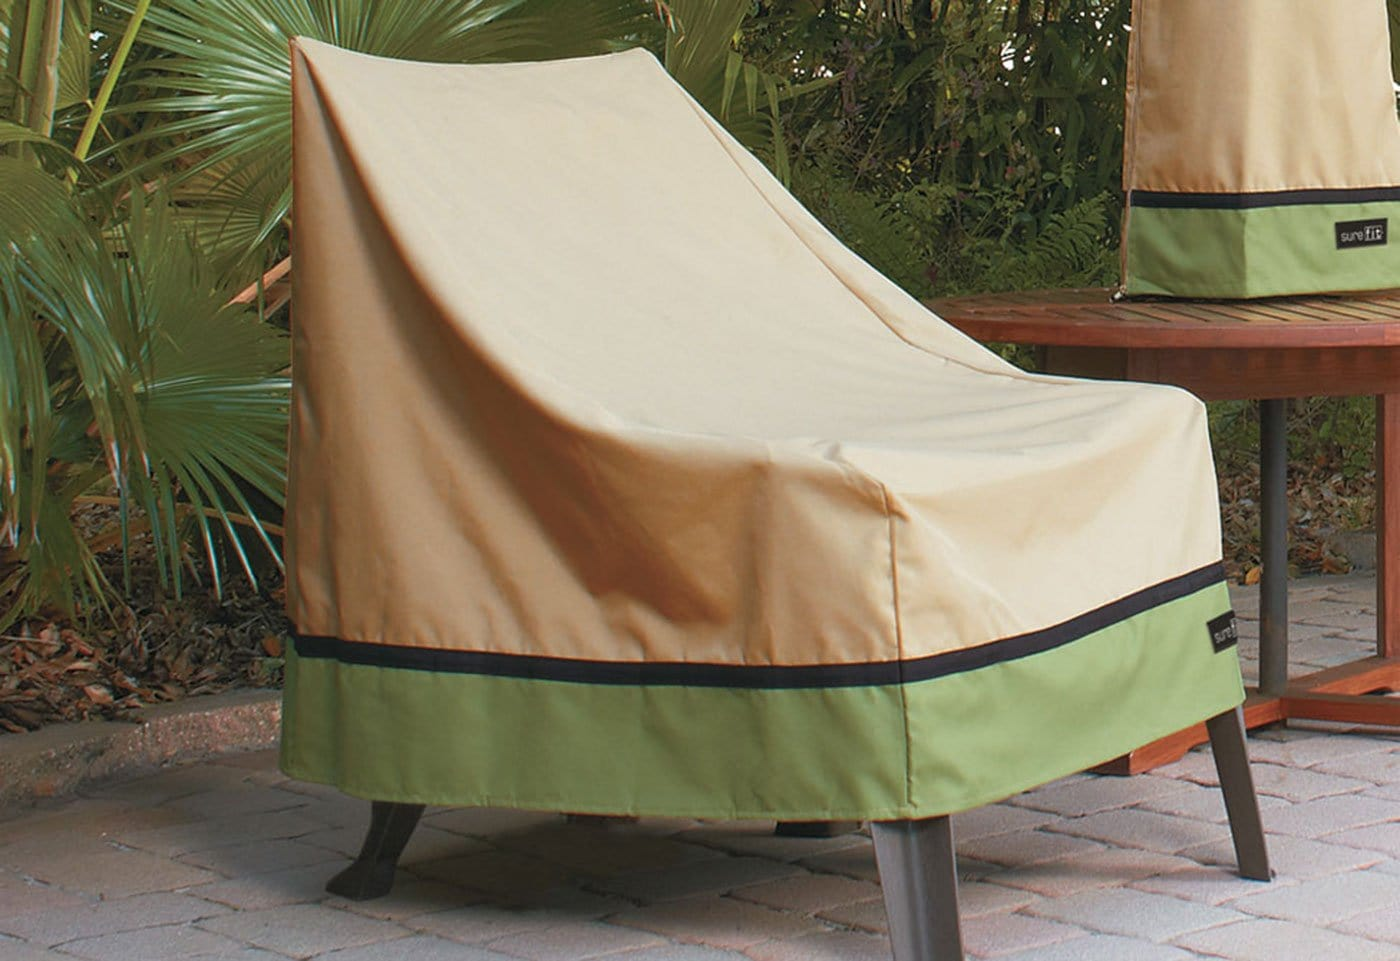 Patio Armor Extra-Large Chair Outdoor Furniture Cover | SureFit